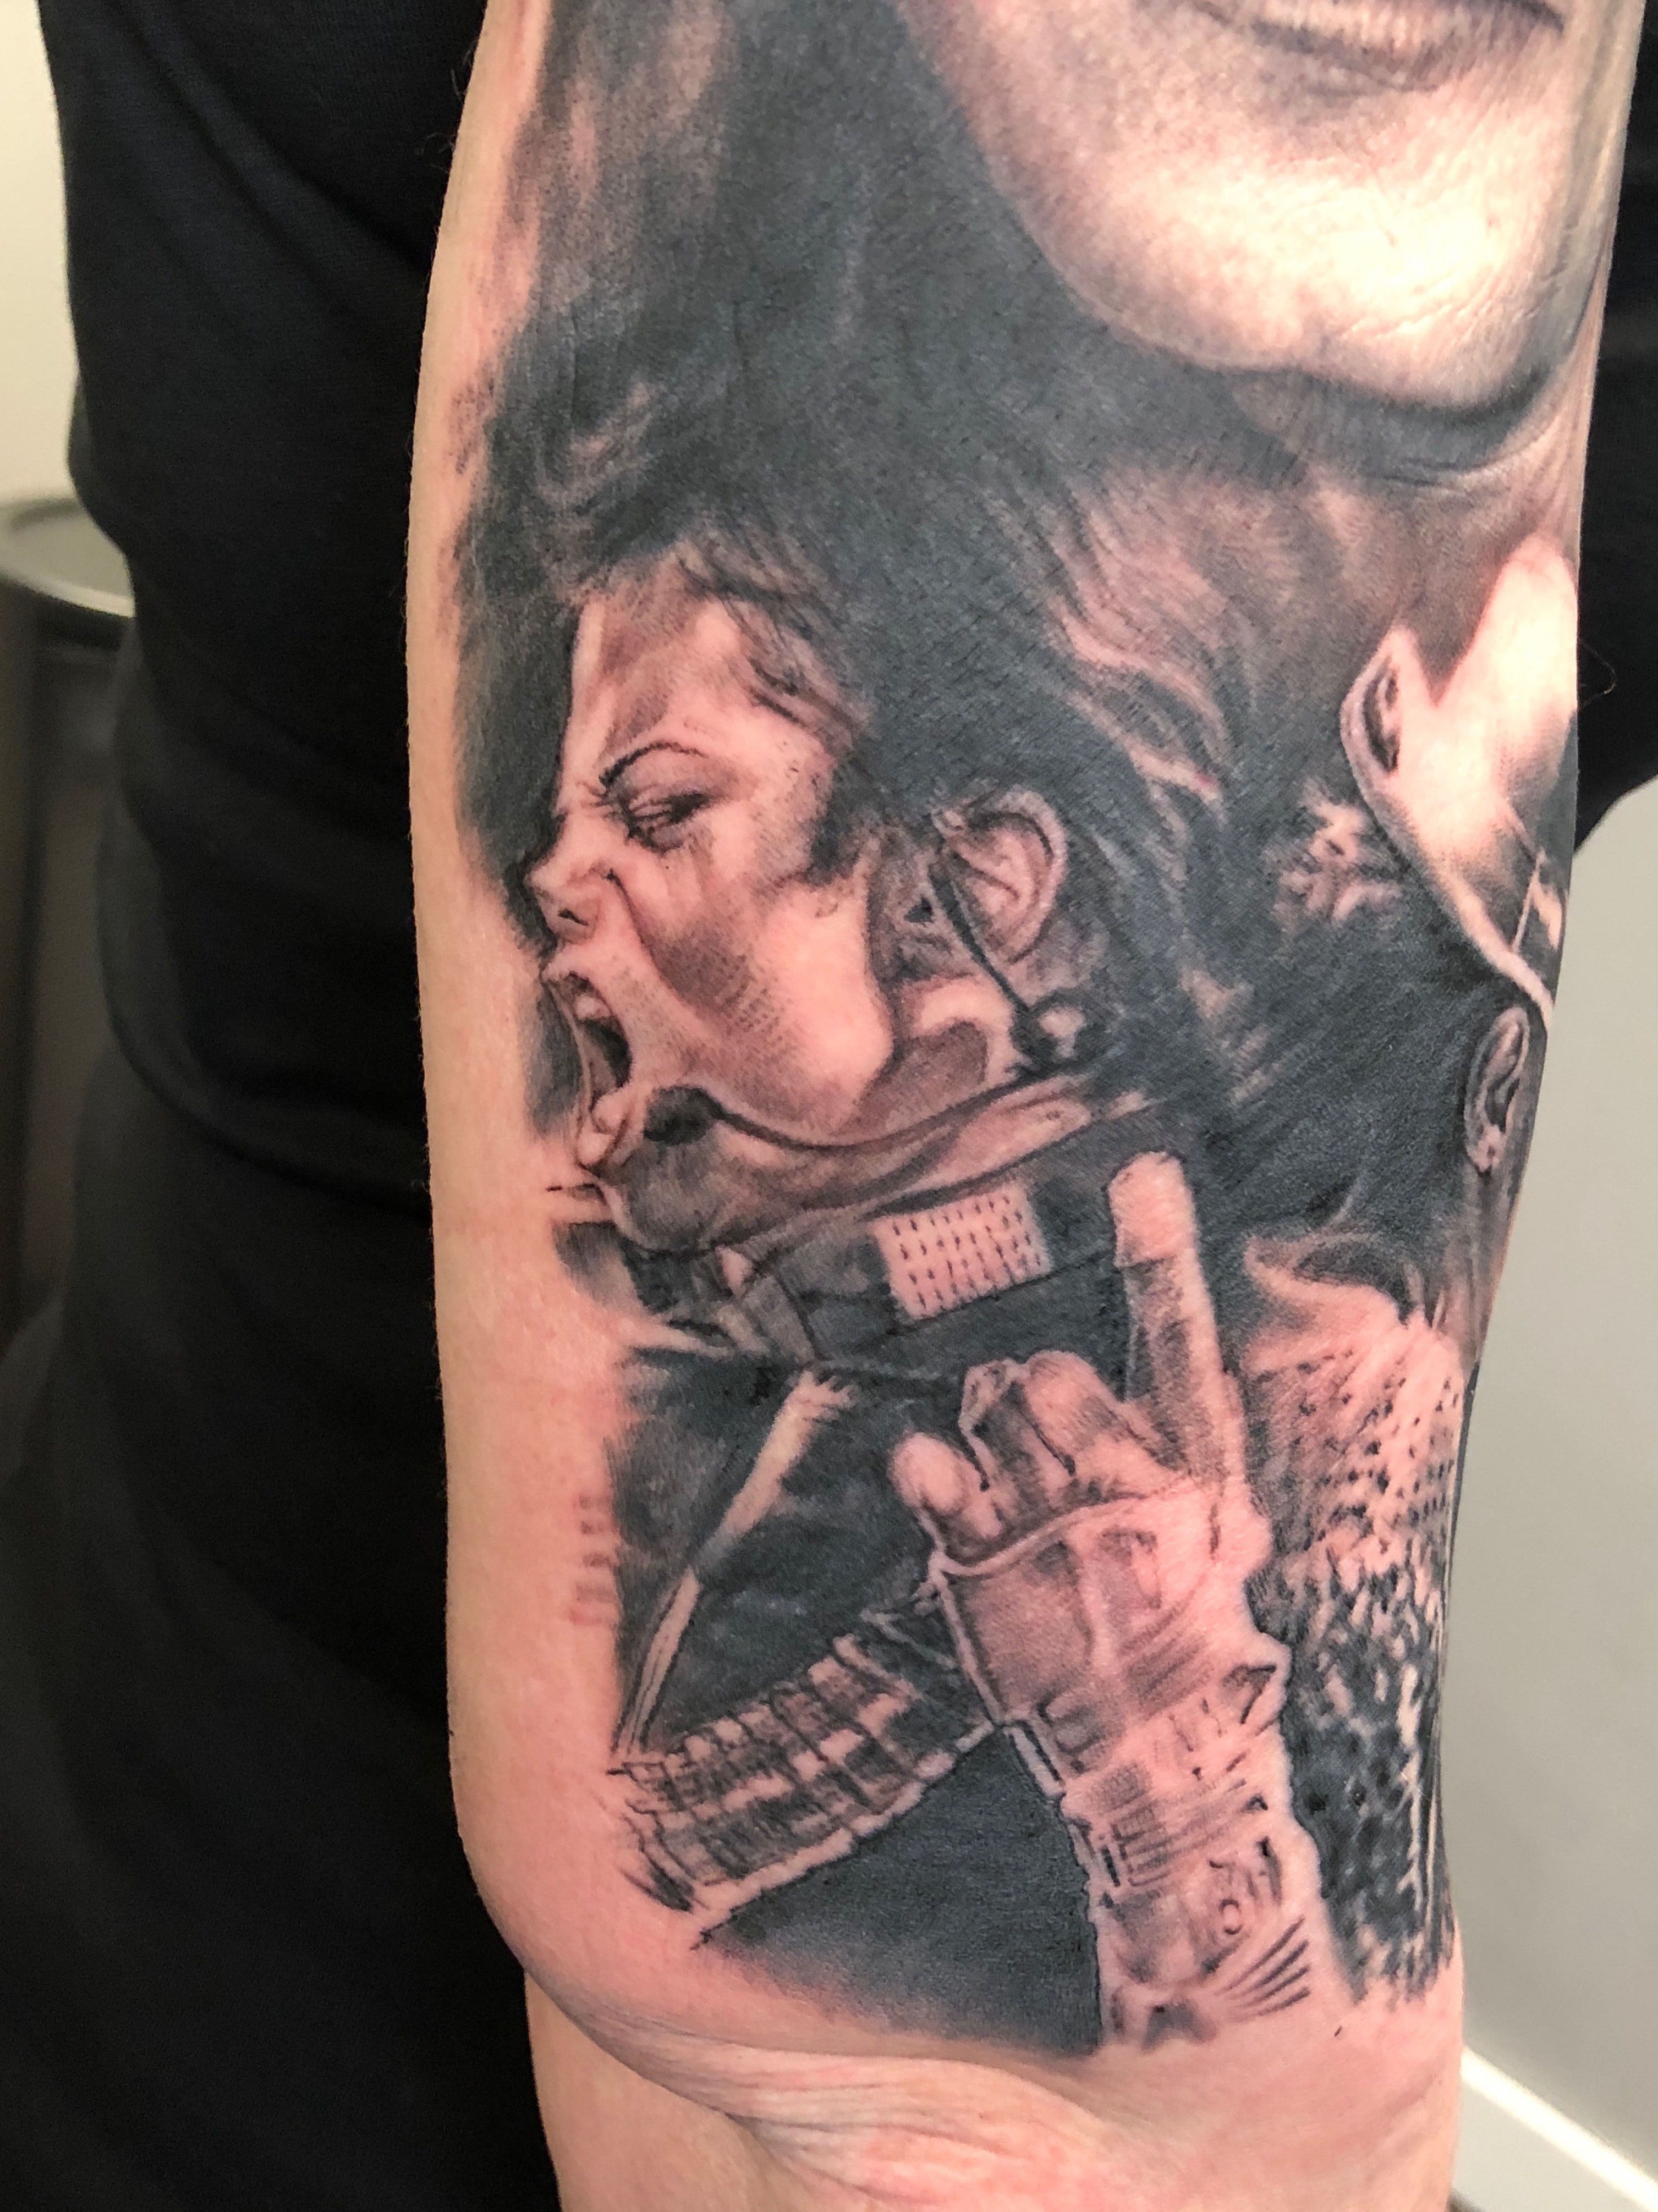 Retrato realismo Santander. Black and grey tattoo. Michael Jackson. Verger Tattoo. JR Verger